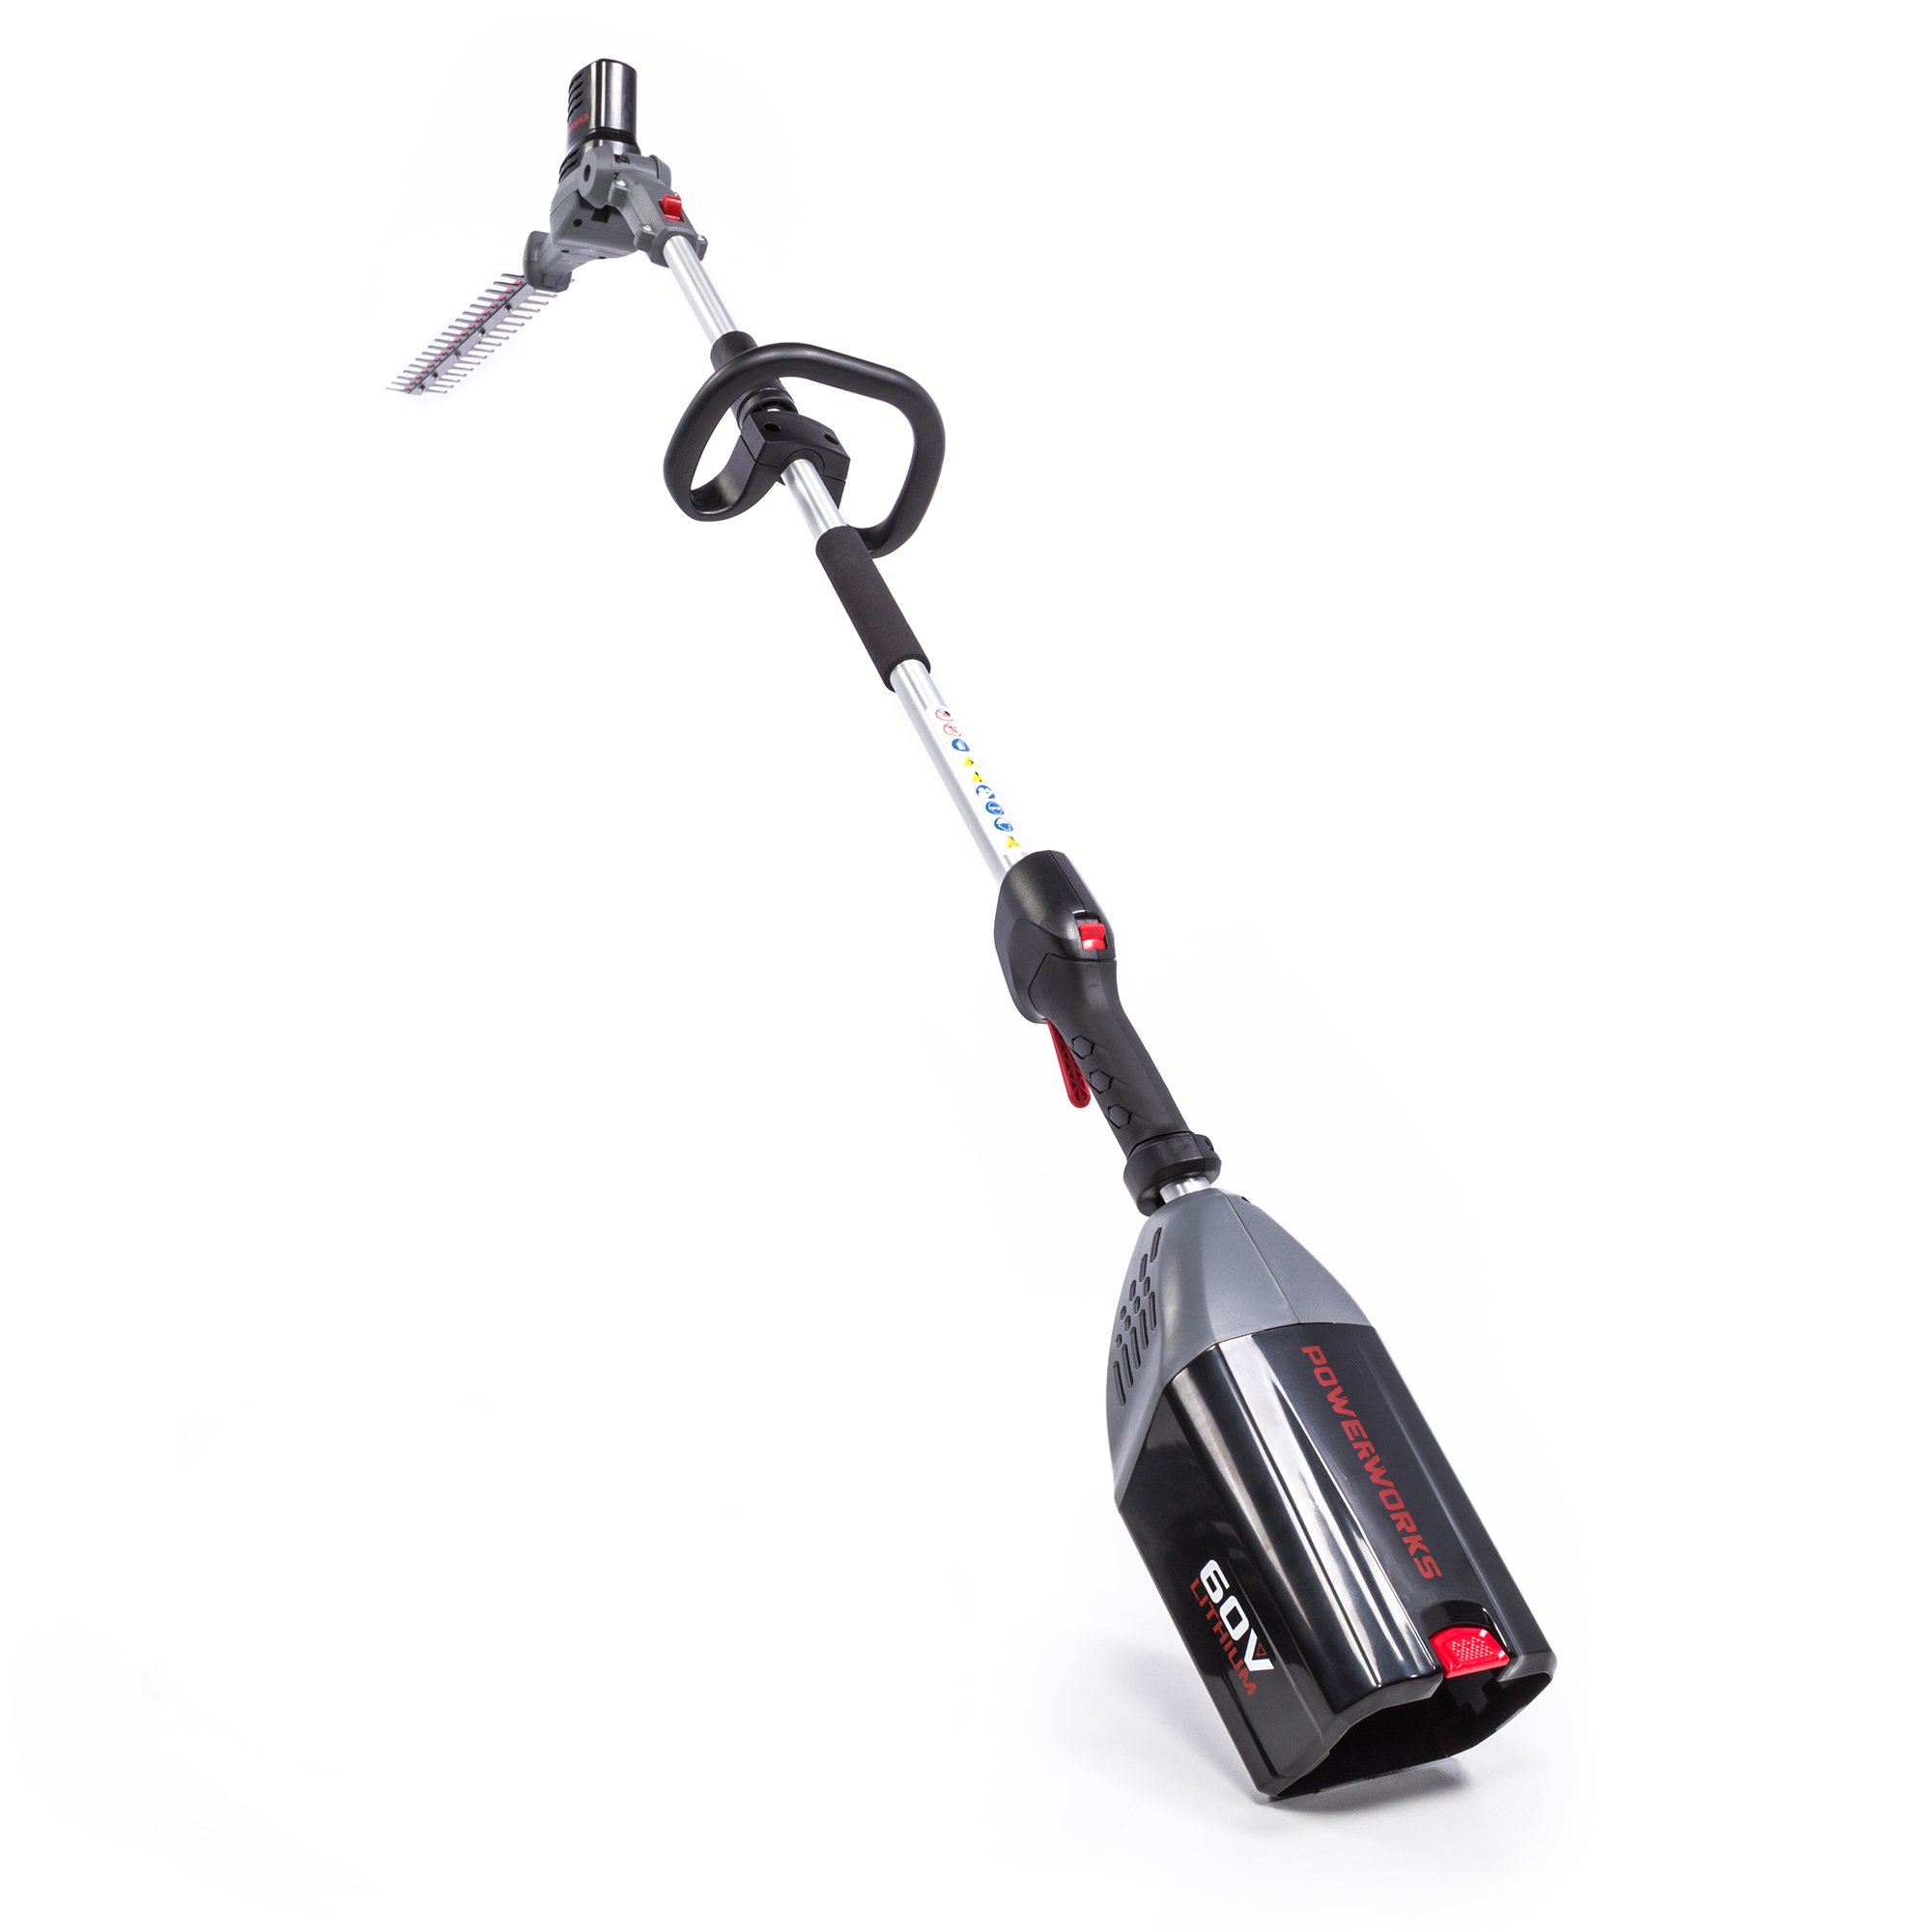 Powerworks 60V 20'' Pole Hedge Trimmer, Battery Not Included PHT60B00PW by POWERWORKS (Image #2)